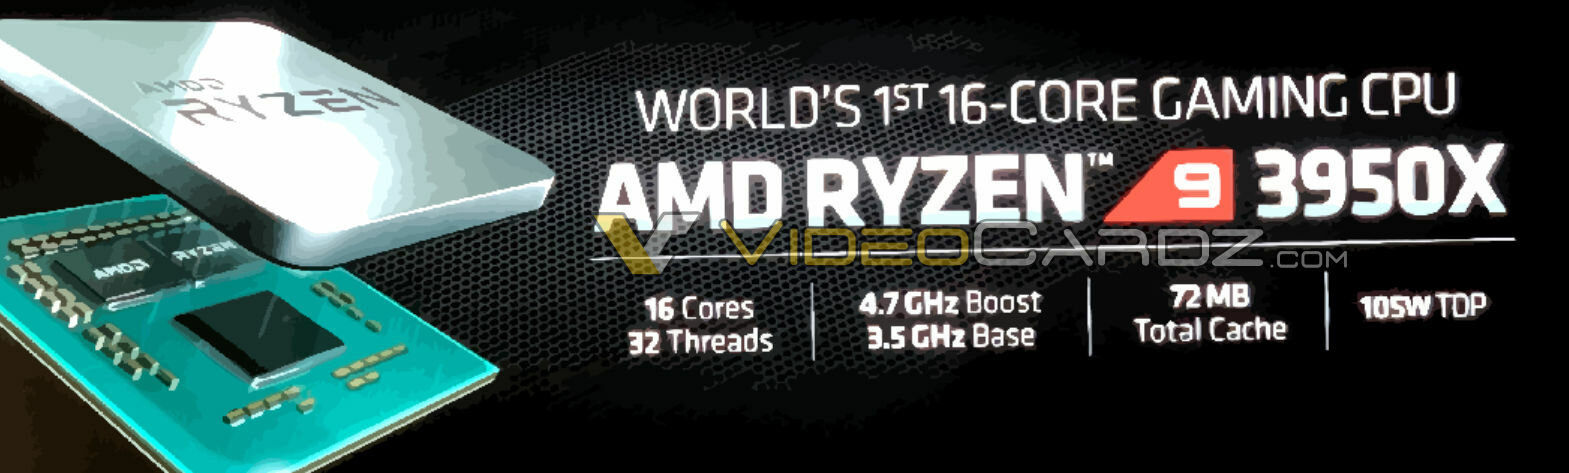 AMD Ryzen 9 3950X Leak